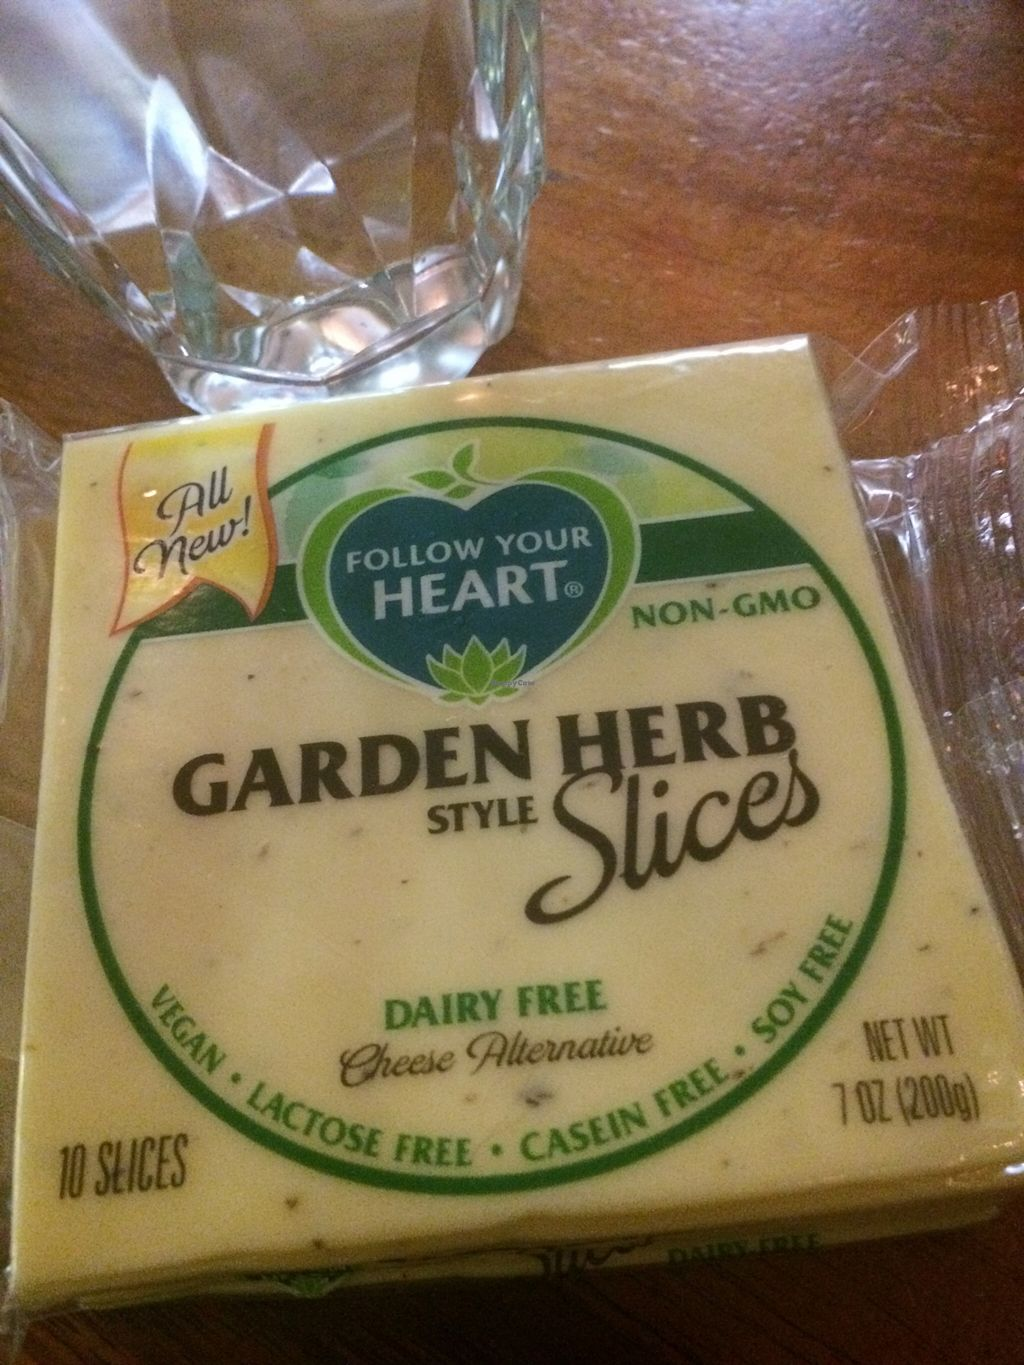 """Photo of Follow Your Heart Restaurant and Market  by <a href=""""/members/profile/serrarose"""">serrarose</a> <br/>My all time favourite cheese! The Provolone is the best flavour but I wanted to sample Garden Herb <br/> December 27, 2015  - <a href='/contact/abuse/image/1609/130040'>Report</a>"""